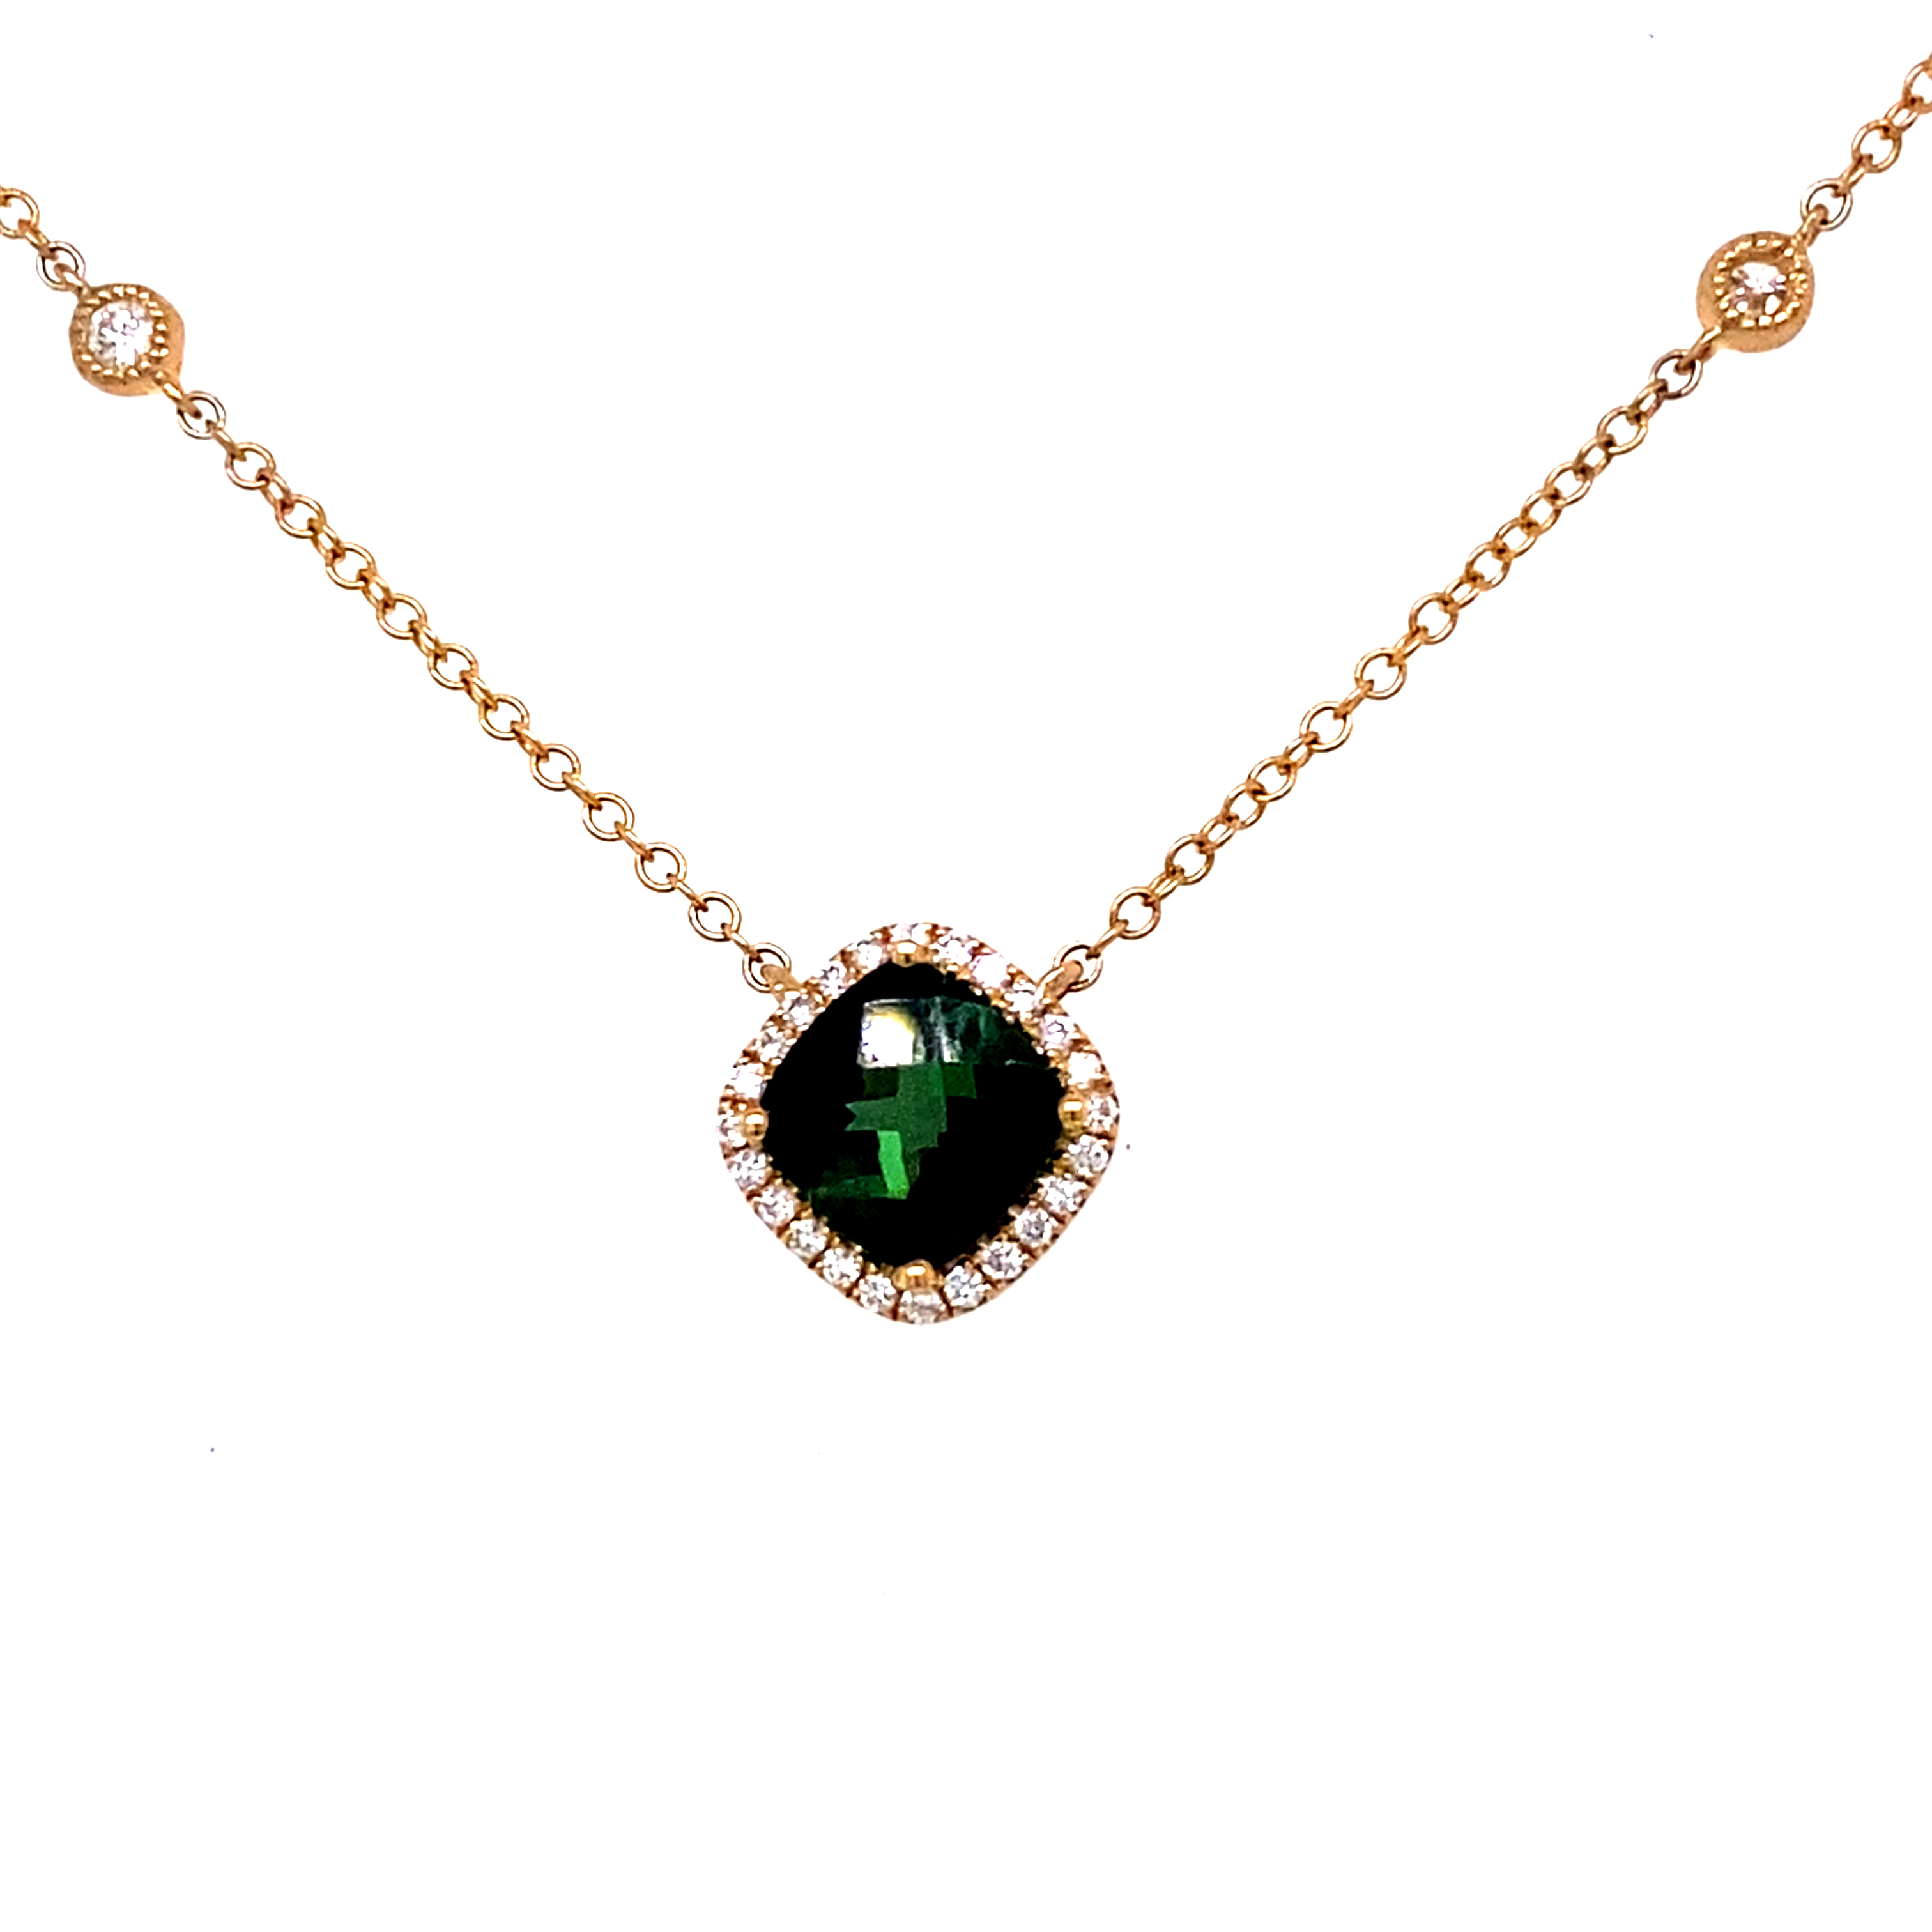 Green Tourmaline and Diamond Necklet